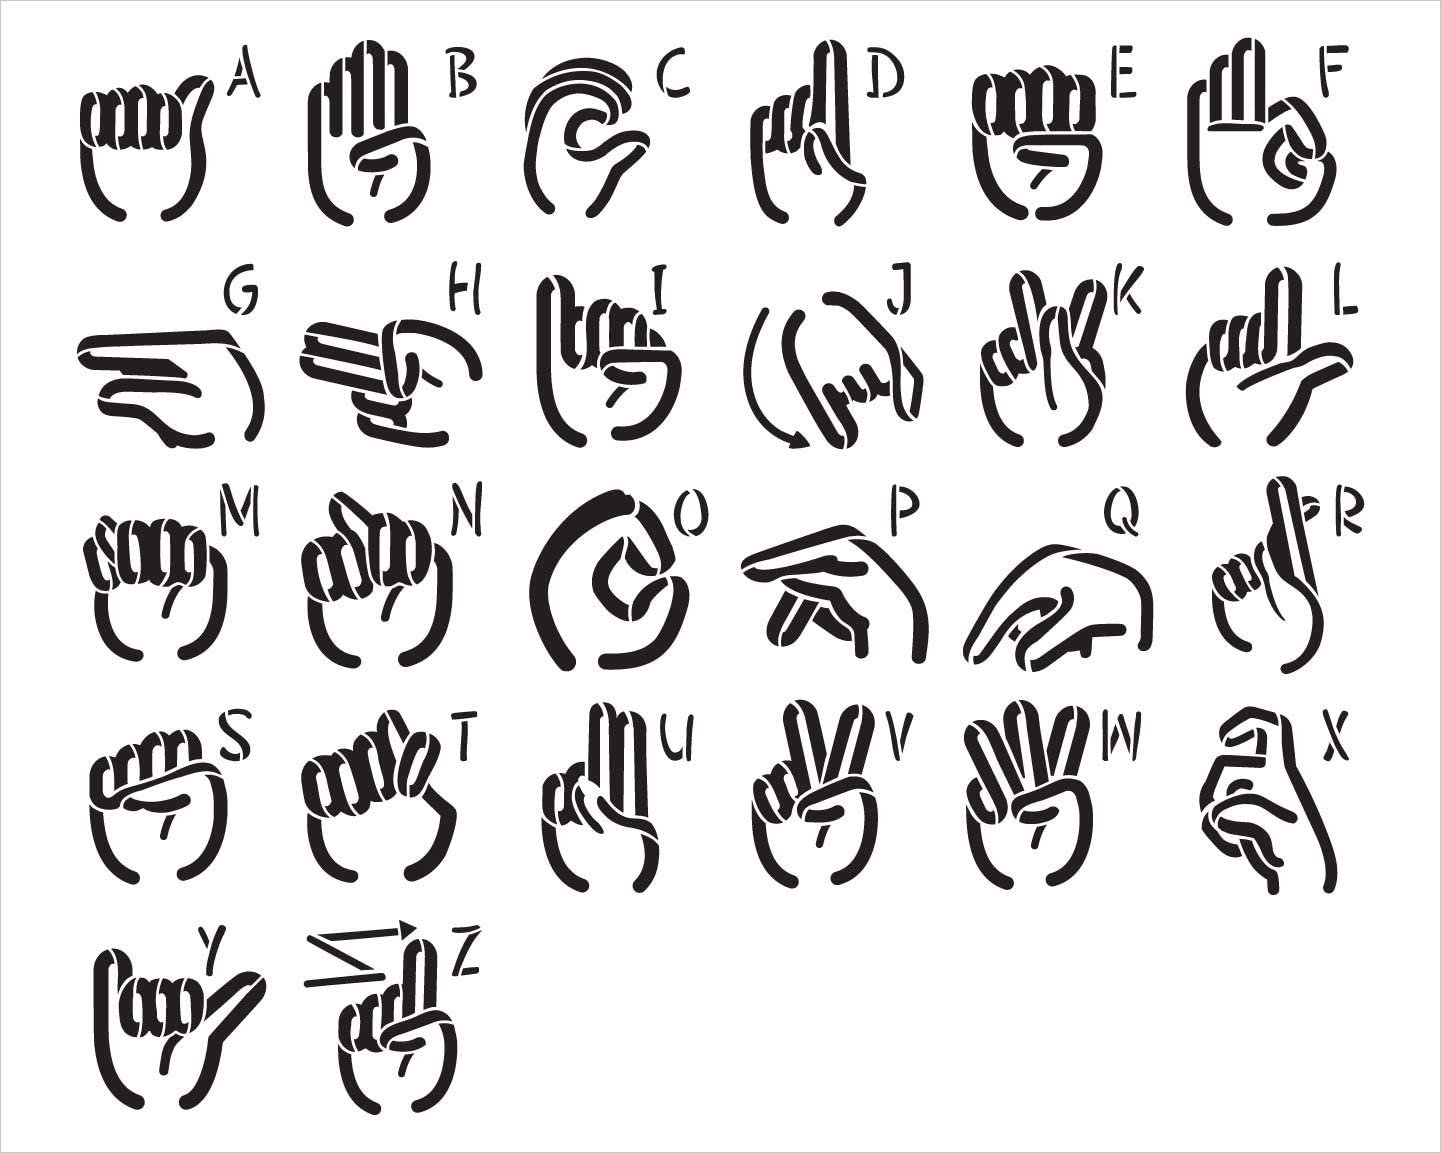 American Sign Language Alphabet Stencil by StudioR12   DIY ASL Family Home Decor   Craft & Paint Wood Sign   Reusable Mylar Template   Finger Spell Hand Symbol Gift Select Size